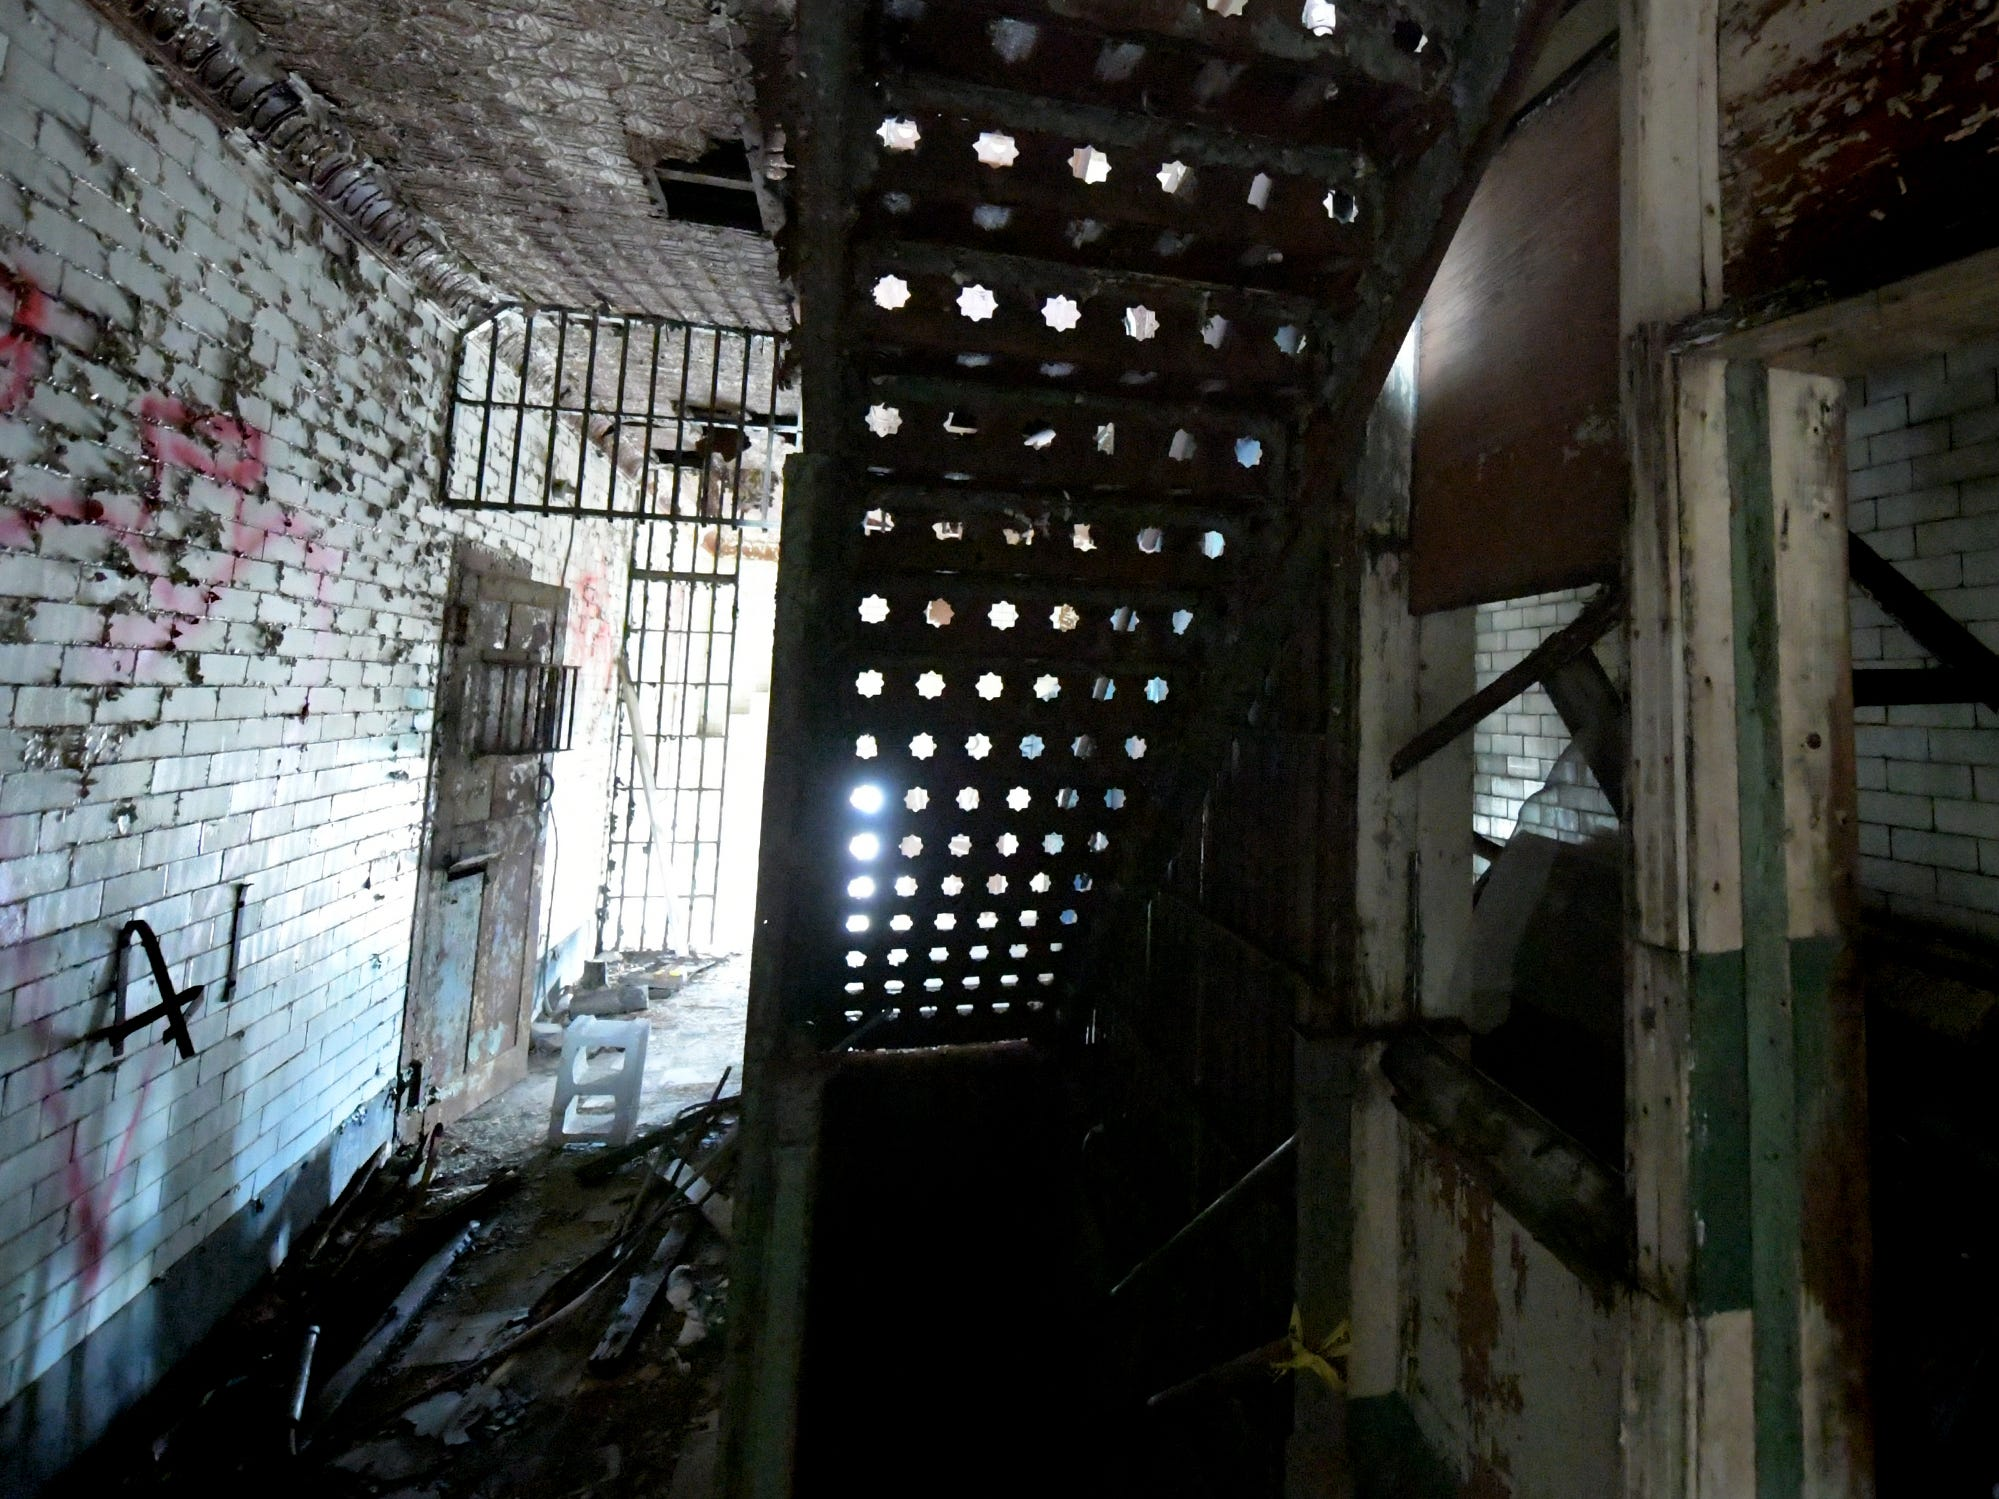 A staircase at the former York County Prison on Chestnut Street in York City Wednesday, Nov. 28, 2018. United Fiber and Data has purchased the building and plans to incorporate the structure into a data center to accompany a 400-mile fiber-optic network it's building between New York and Virginia. Bill Kalina photo